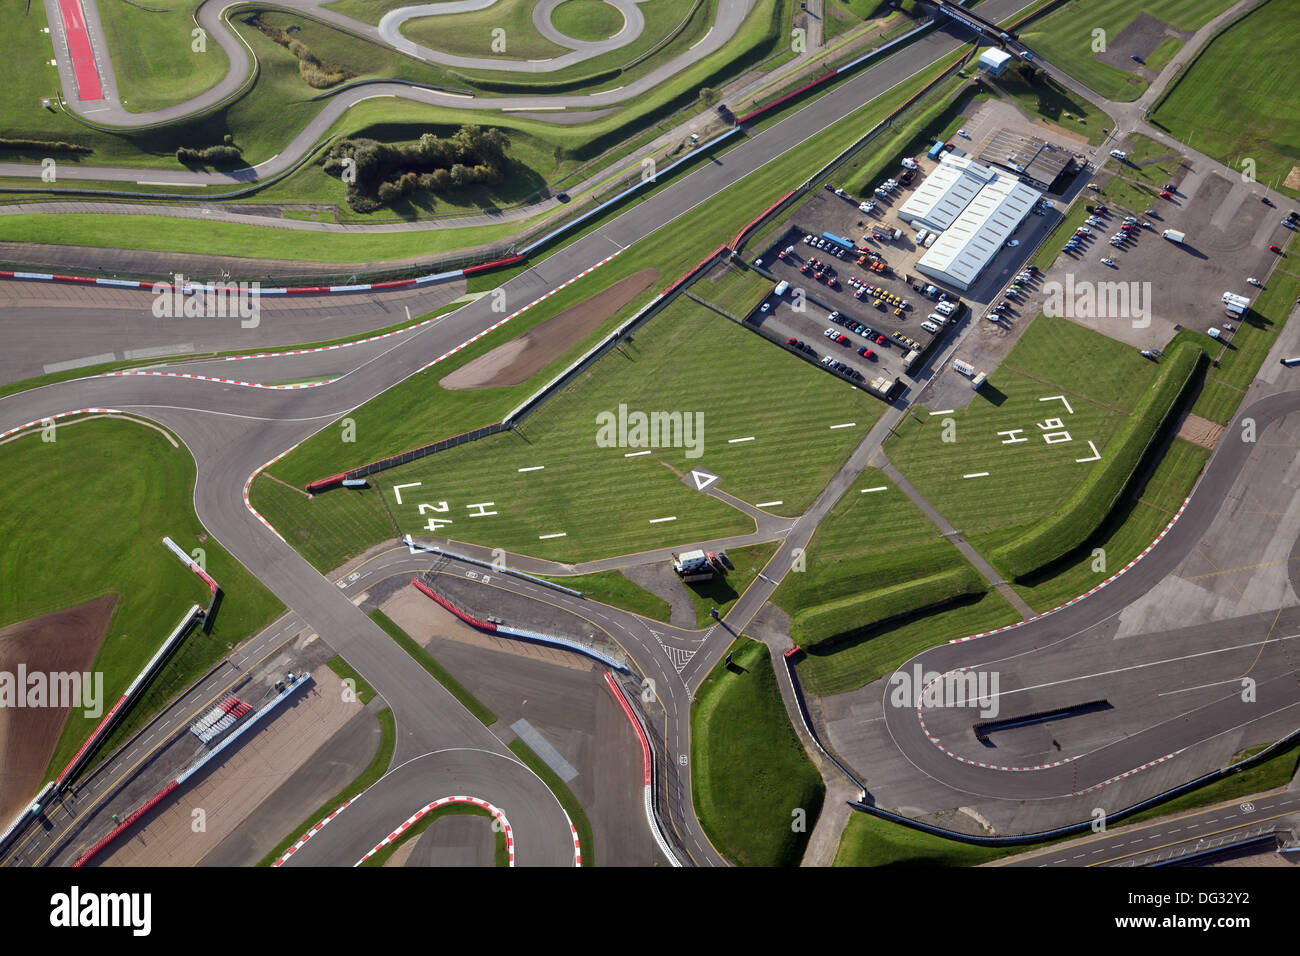 Silverstone Racing Circuit In Northamptonshire Stock Photos ...